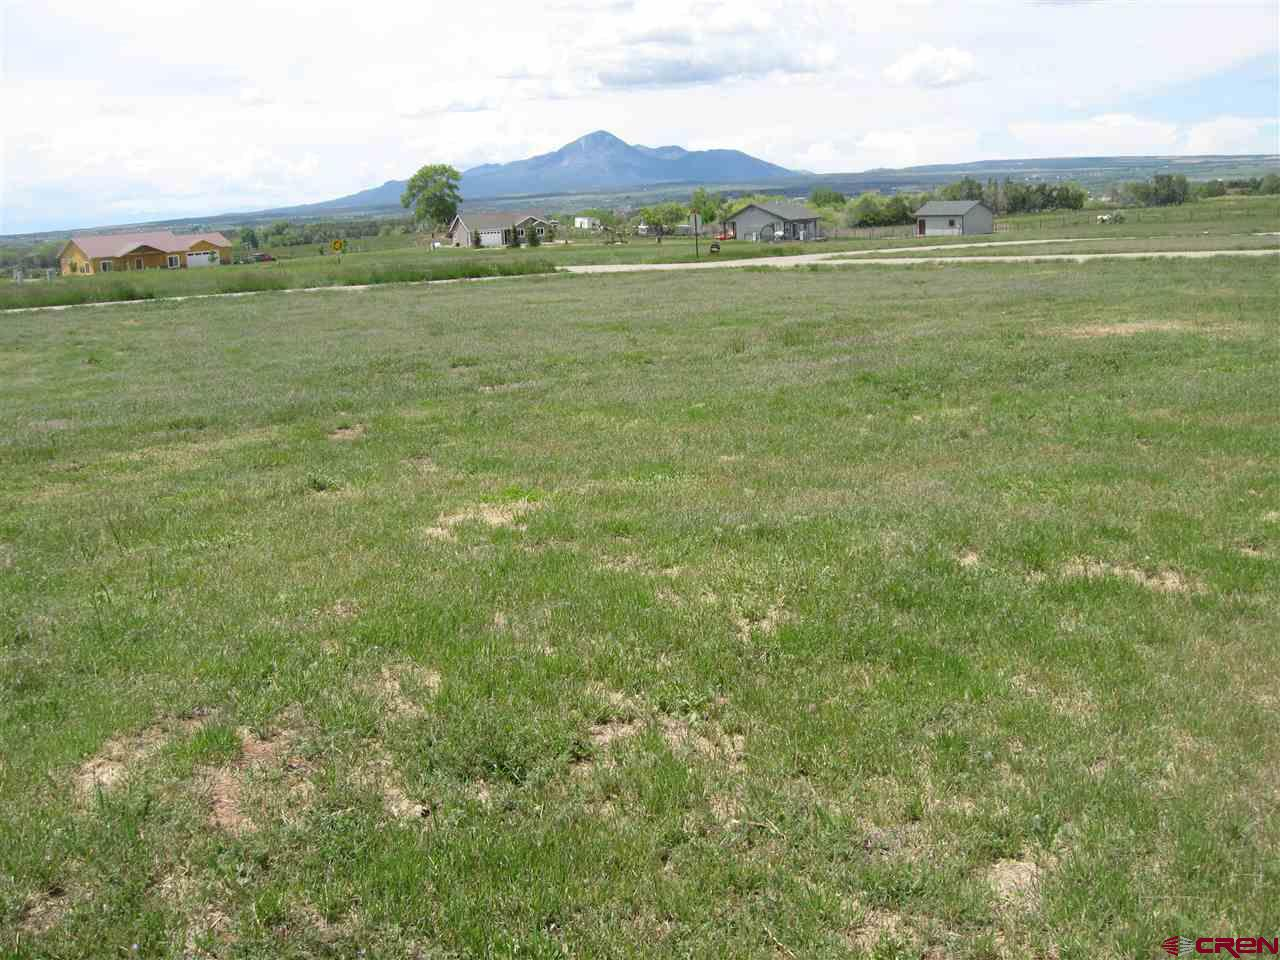 Nearly an acre sized lot with great views in an established subdivision in the county.  Priced to sell!  Lot has low taxes due to agriculture status.  County variance for set backs included with this lot. Irrigation water pipeline runs thru property (water shares not included with purchase of property, buyer must purchase and/or lease own shares).  All utilities can be accessed at the county road.